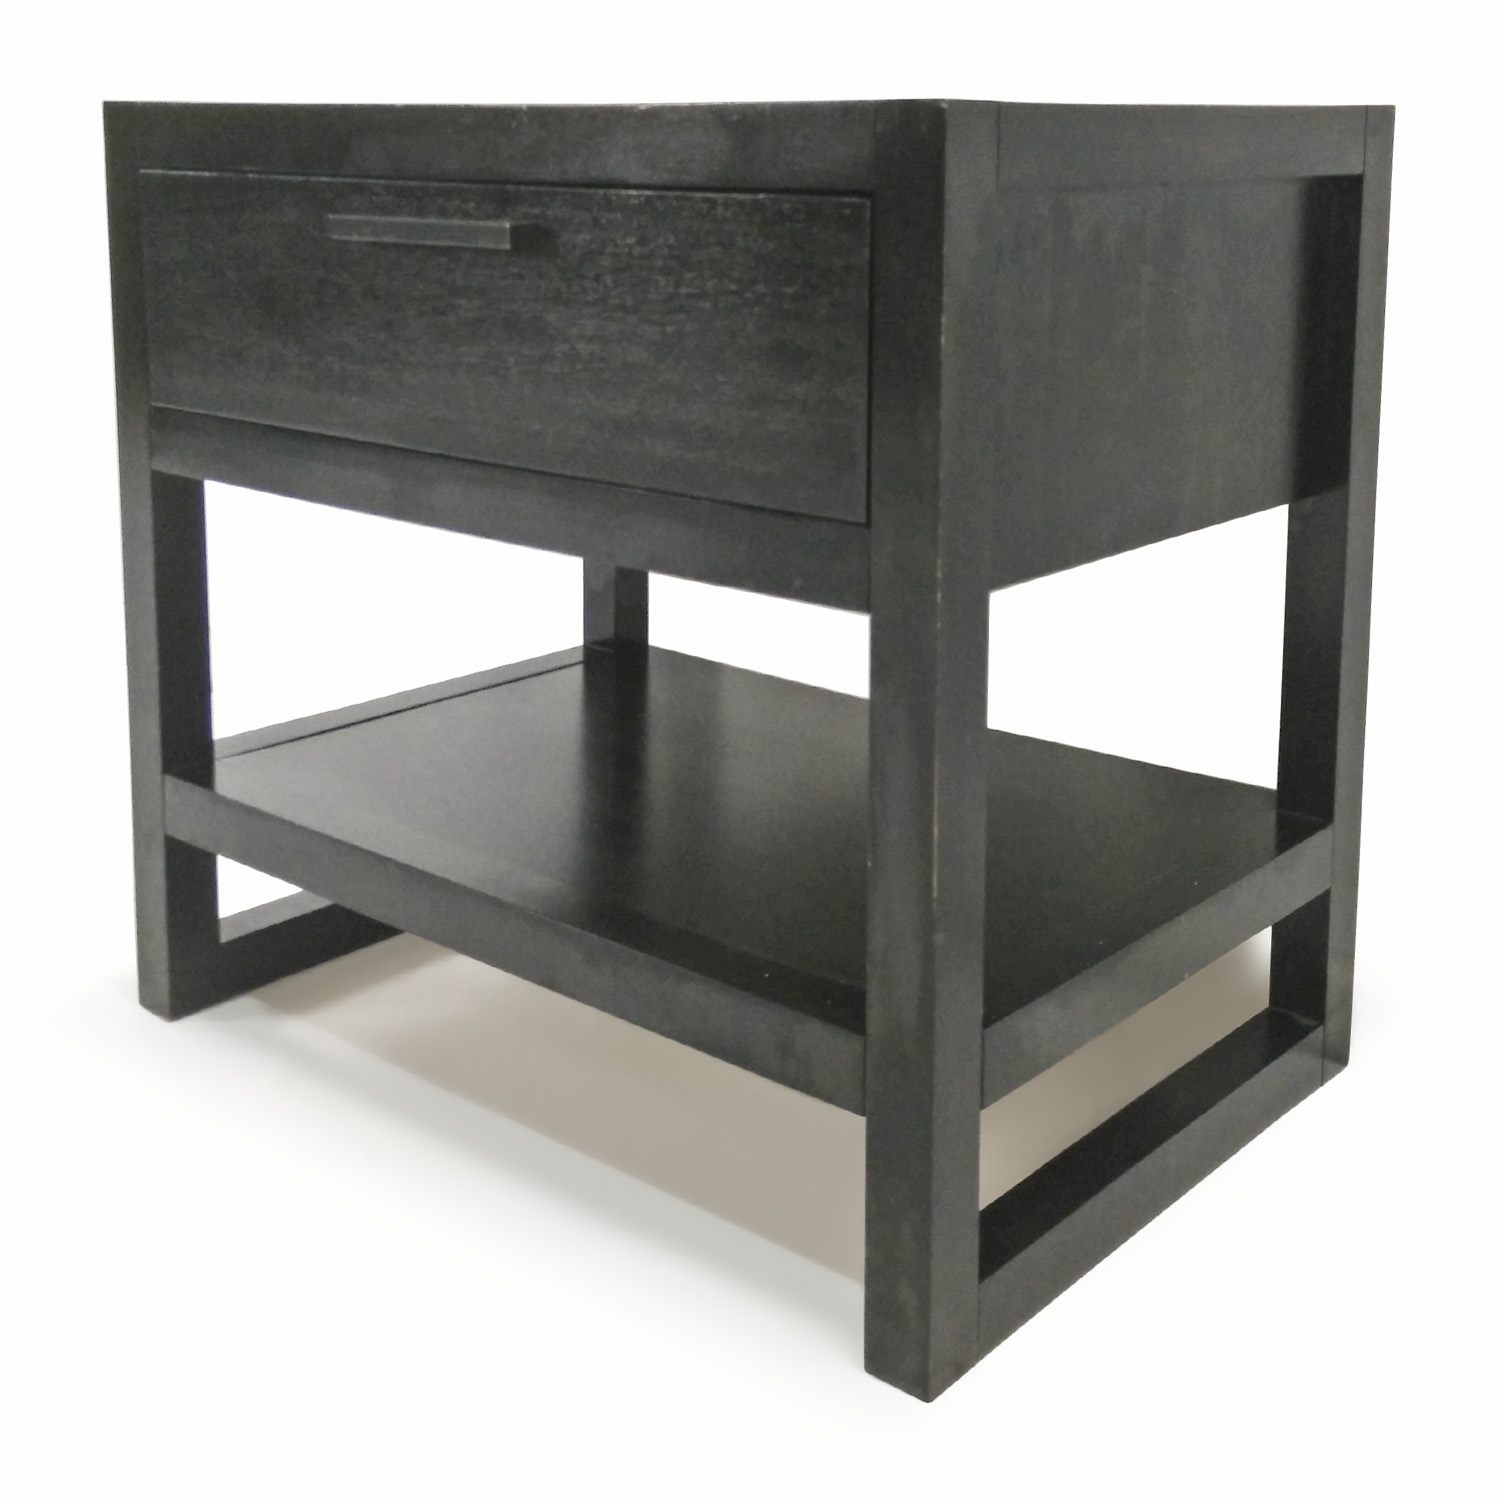 80 off macy 39 s macy 39 s dark wood side table tables for Black wood side table